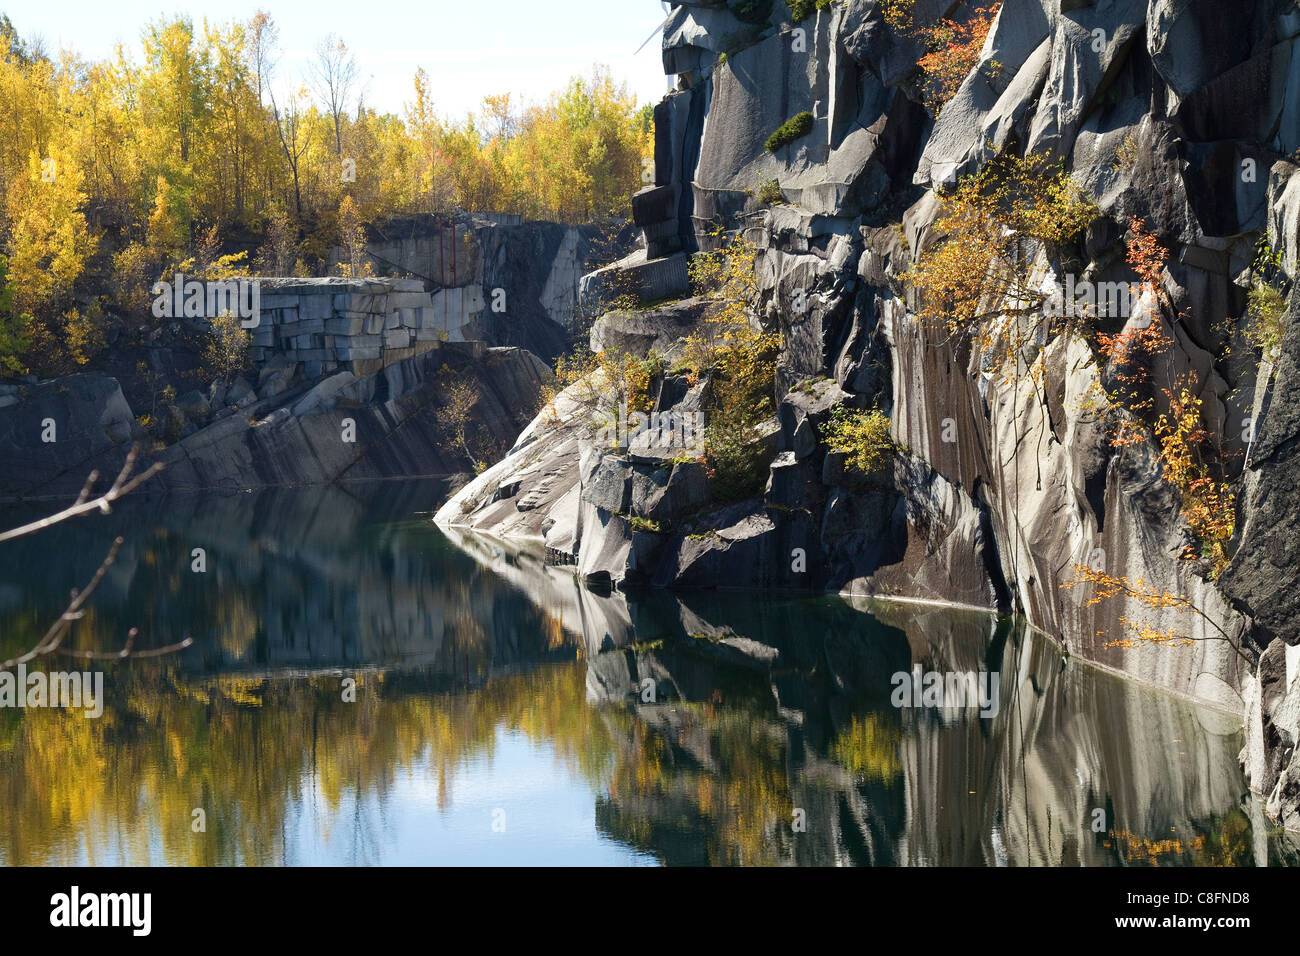 Quarry landscape of Granite rock, stone, at abandoned quarry in Barre, Vermont with autumn, fall, foliage colors. - Stock Image